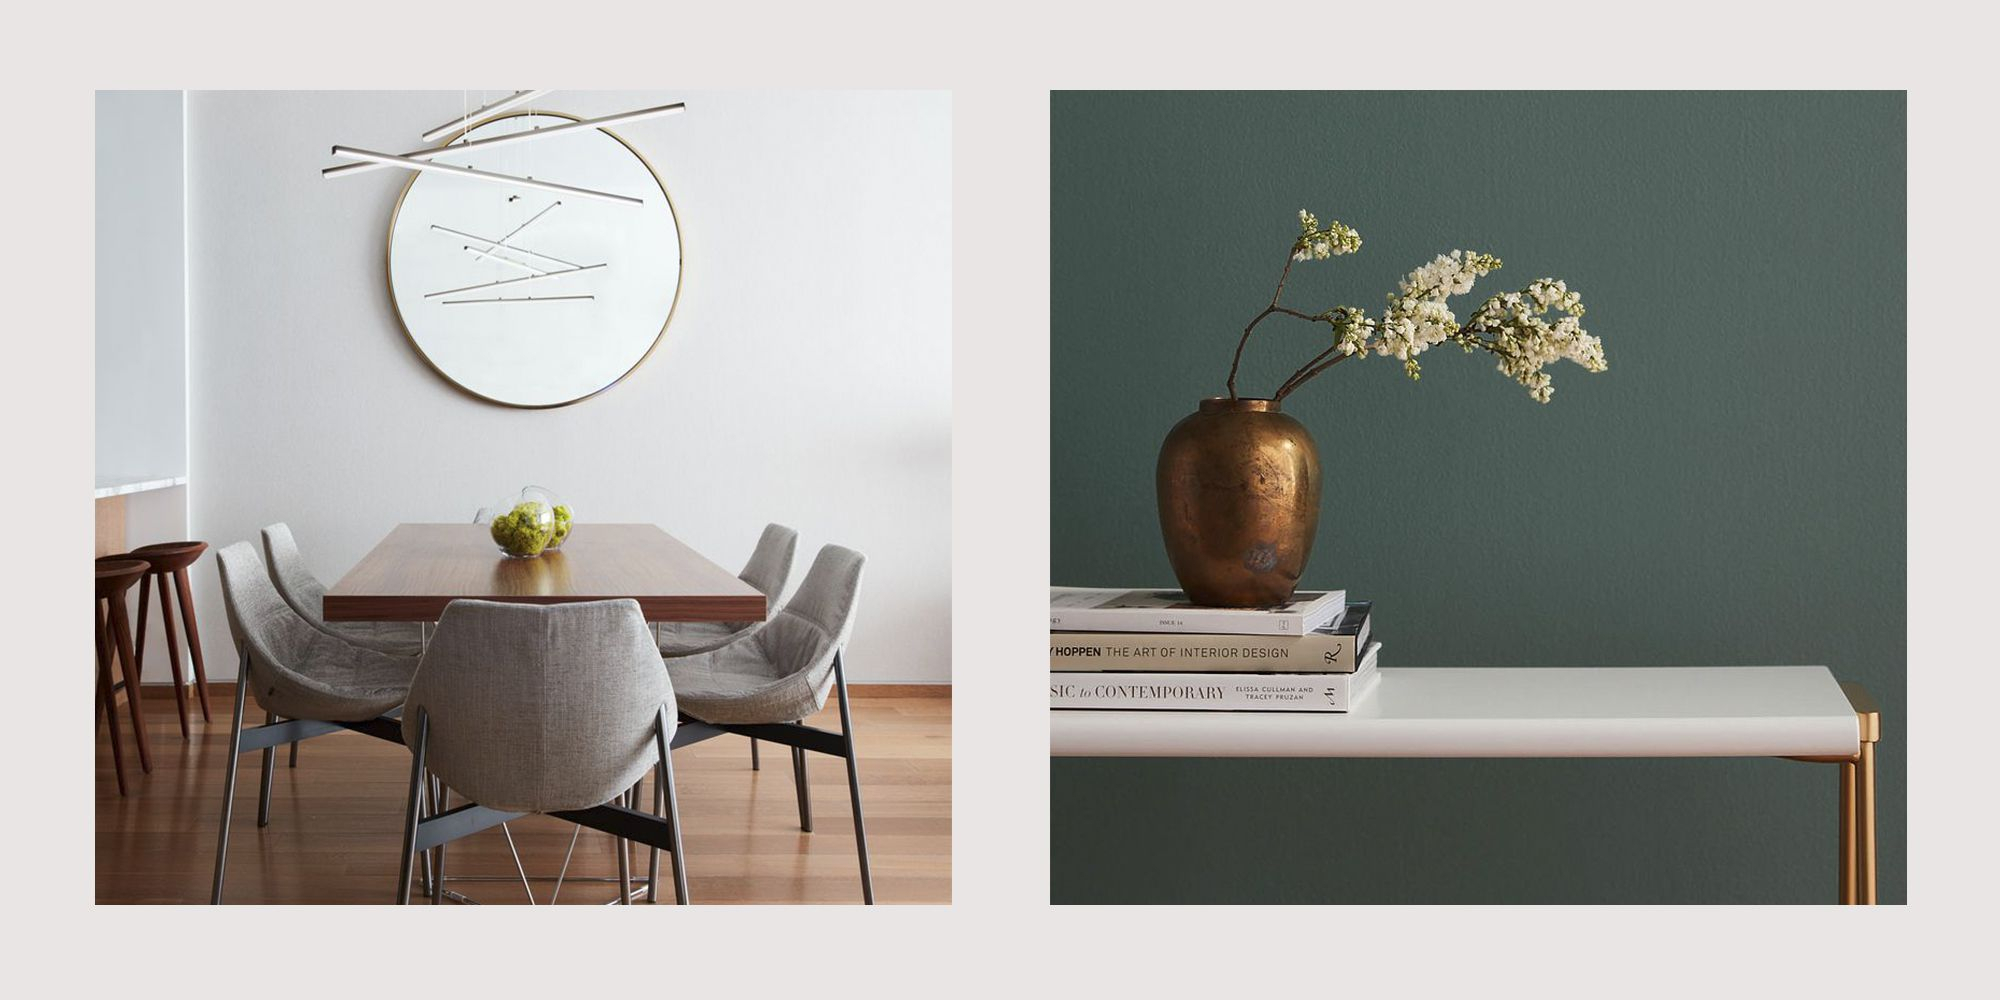 Latest Oil Rubbed Metal Wall Decor For Top Interior Design Trends 2019 – What Decorating Styles Are In & Out (View 7 of 20)